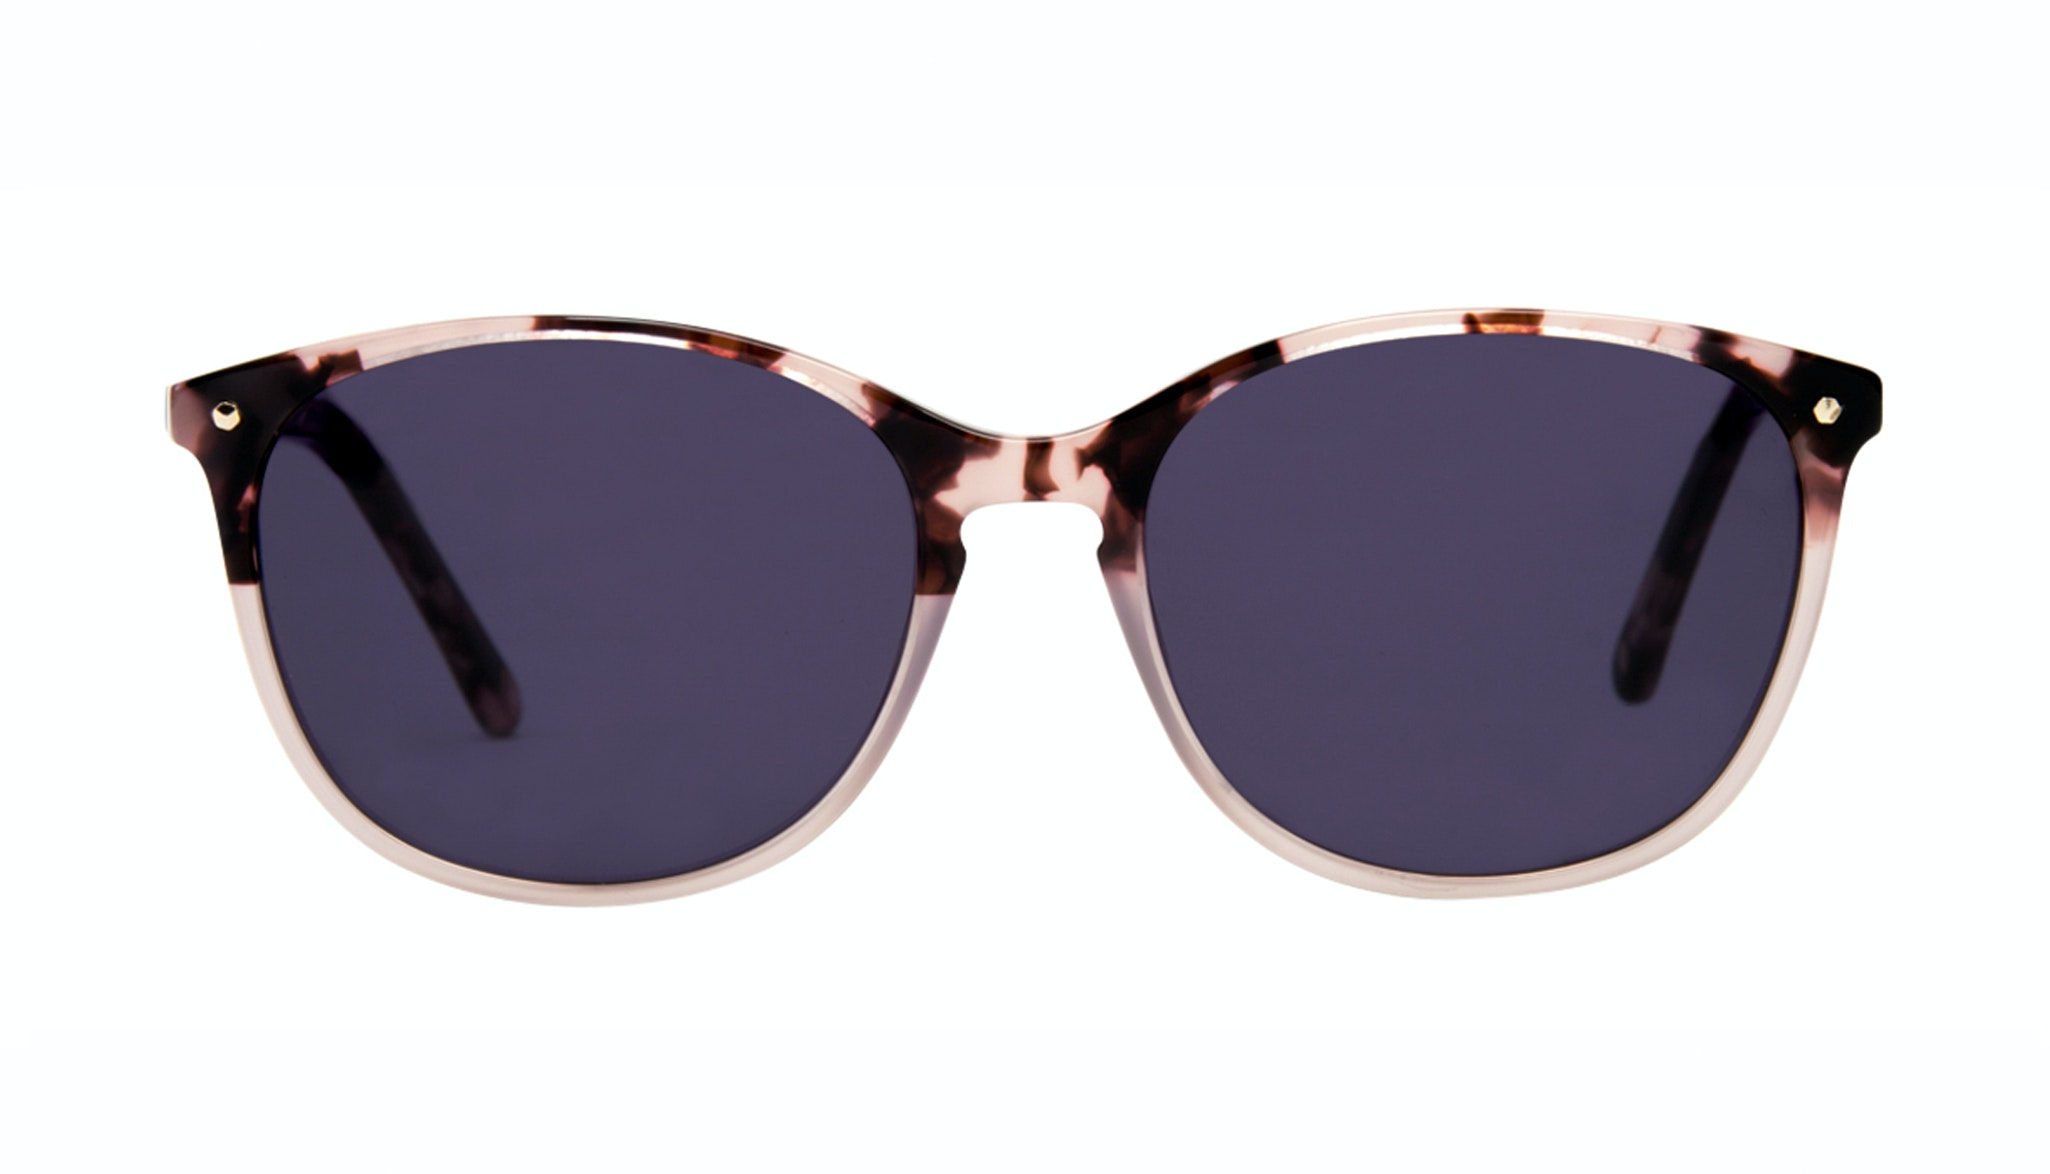 Affordable Fashion Glasses Rectangle Square Round Sunglasses Women Nadine Two Tone Pink